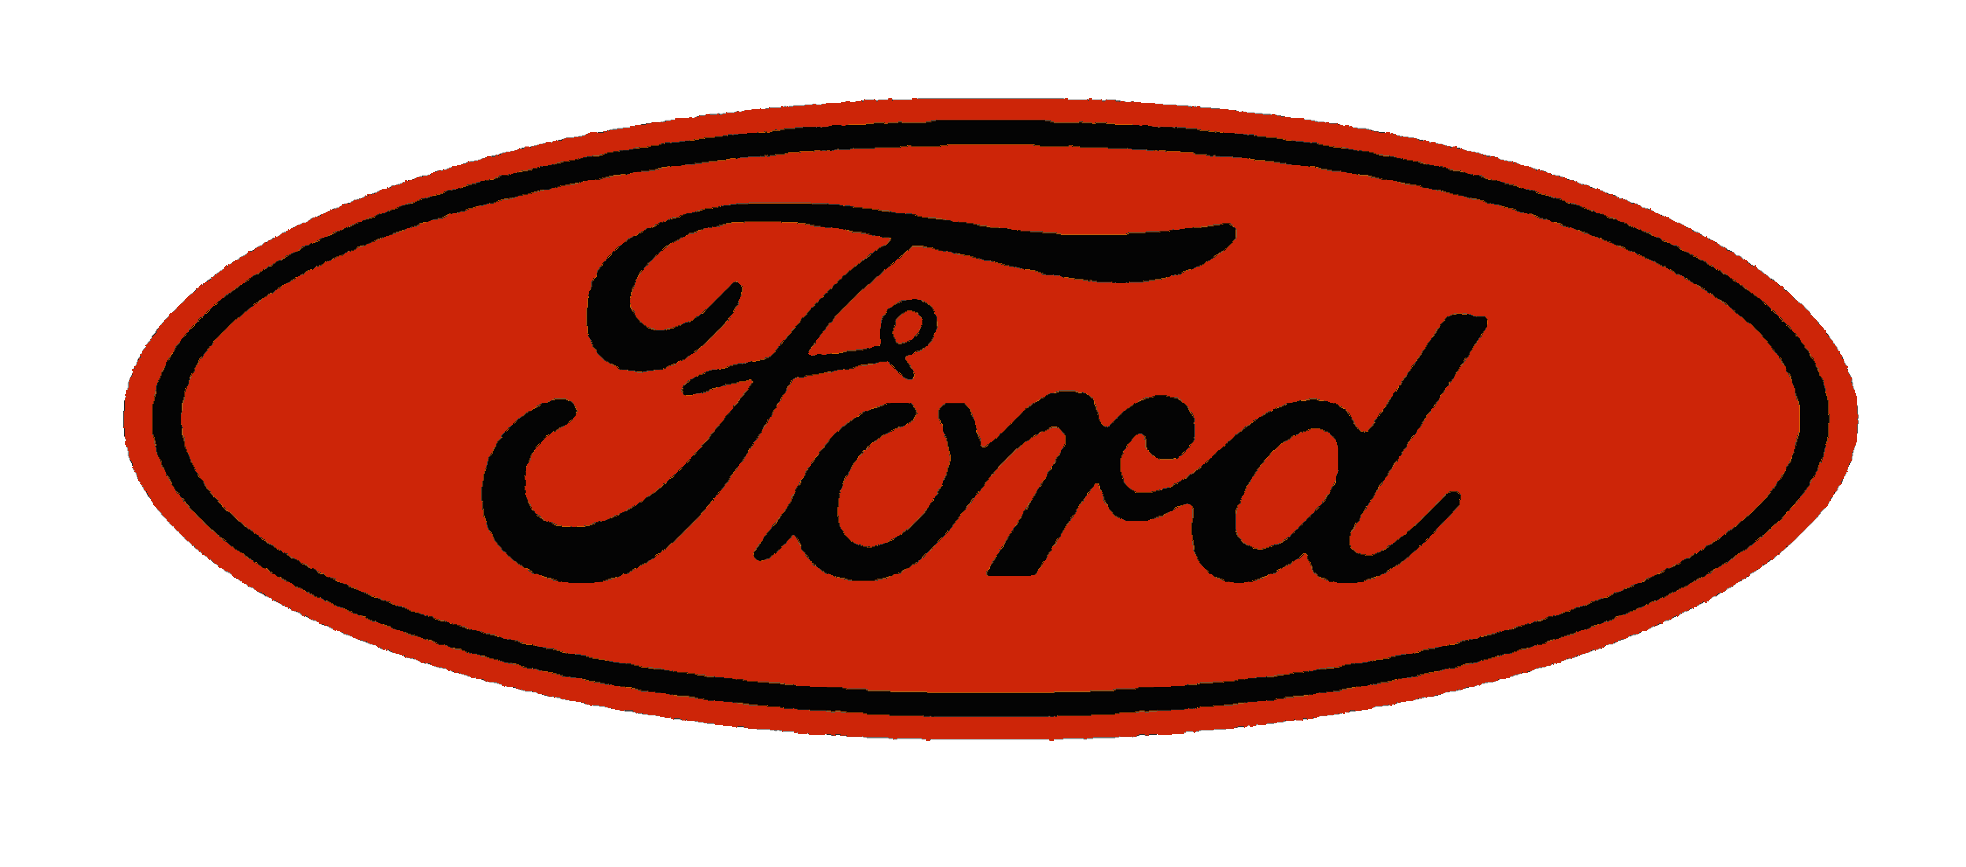 red ford logo png #1779